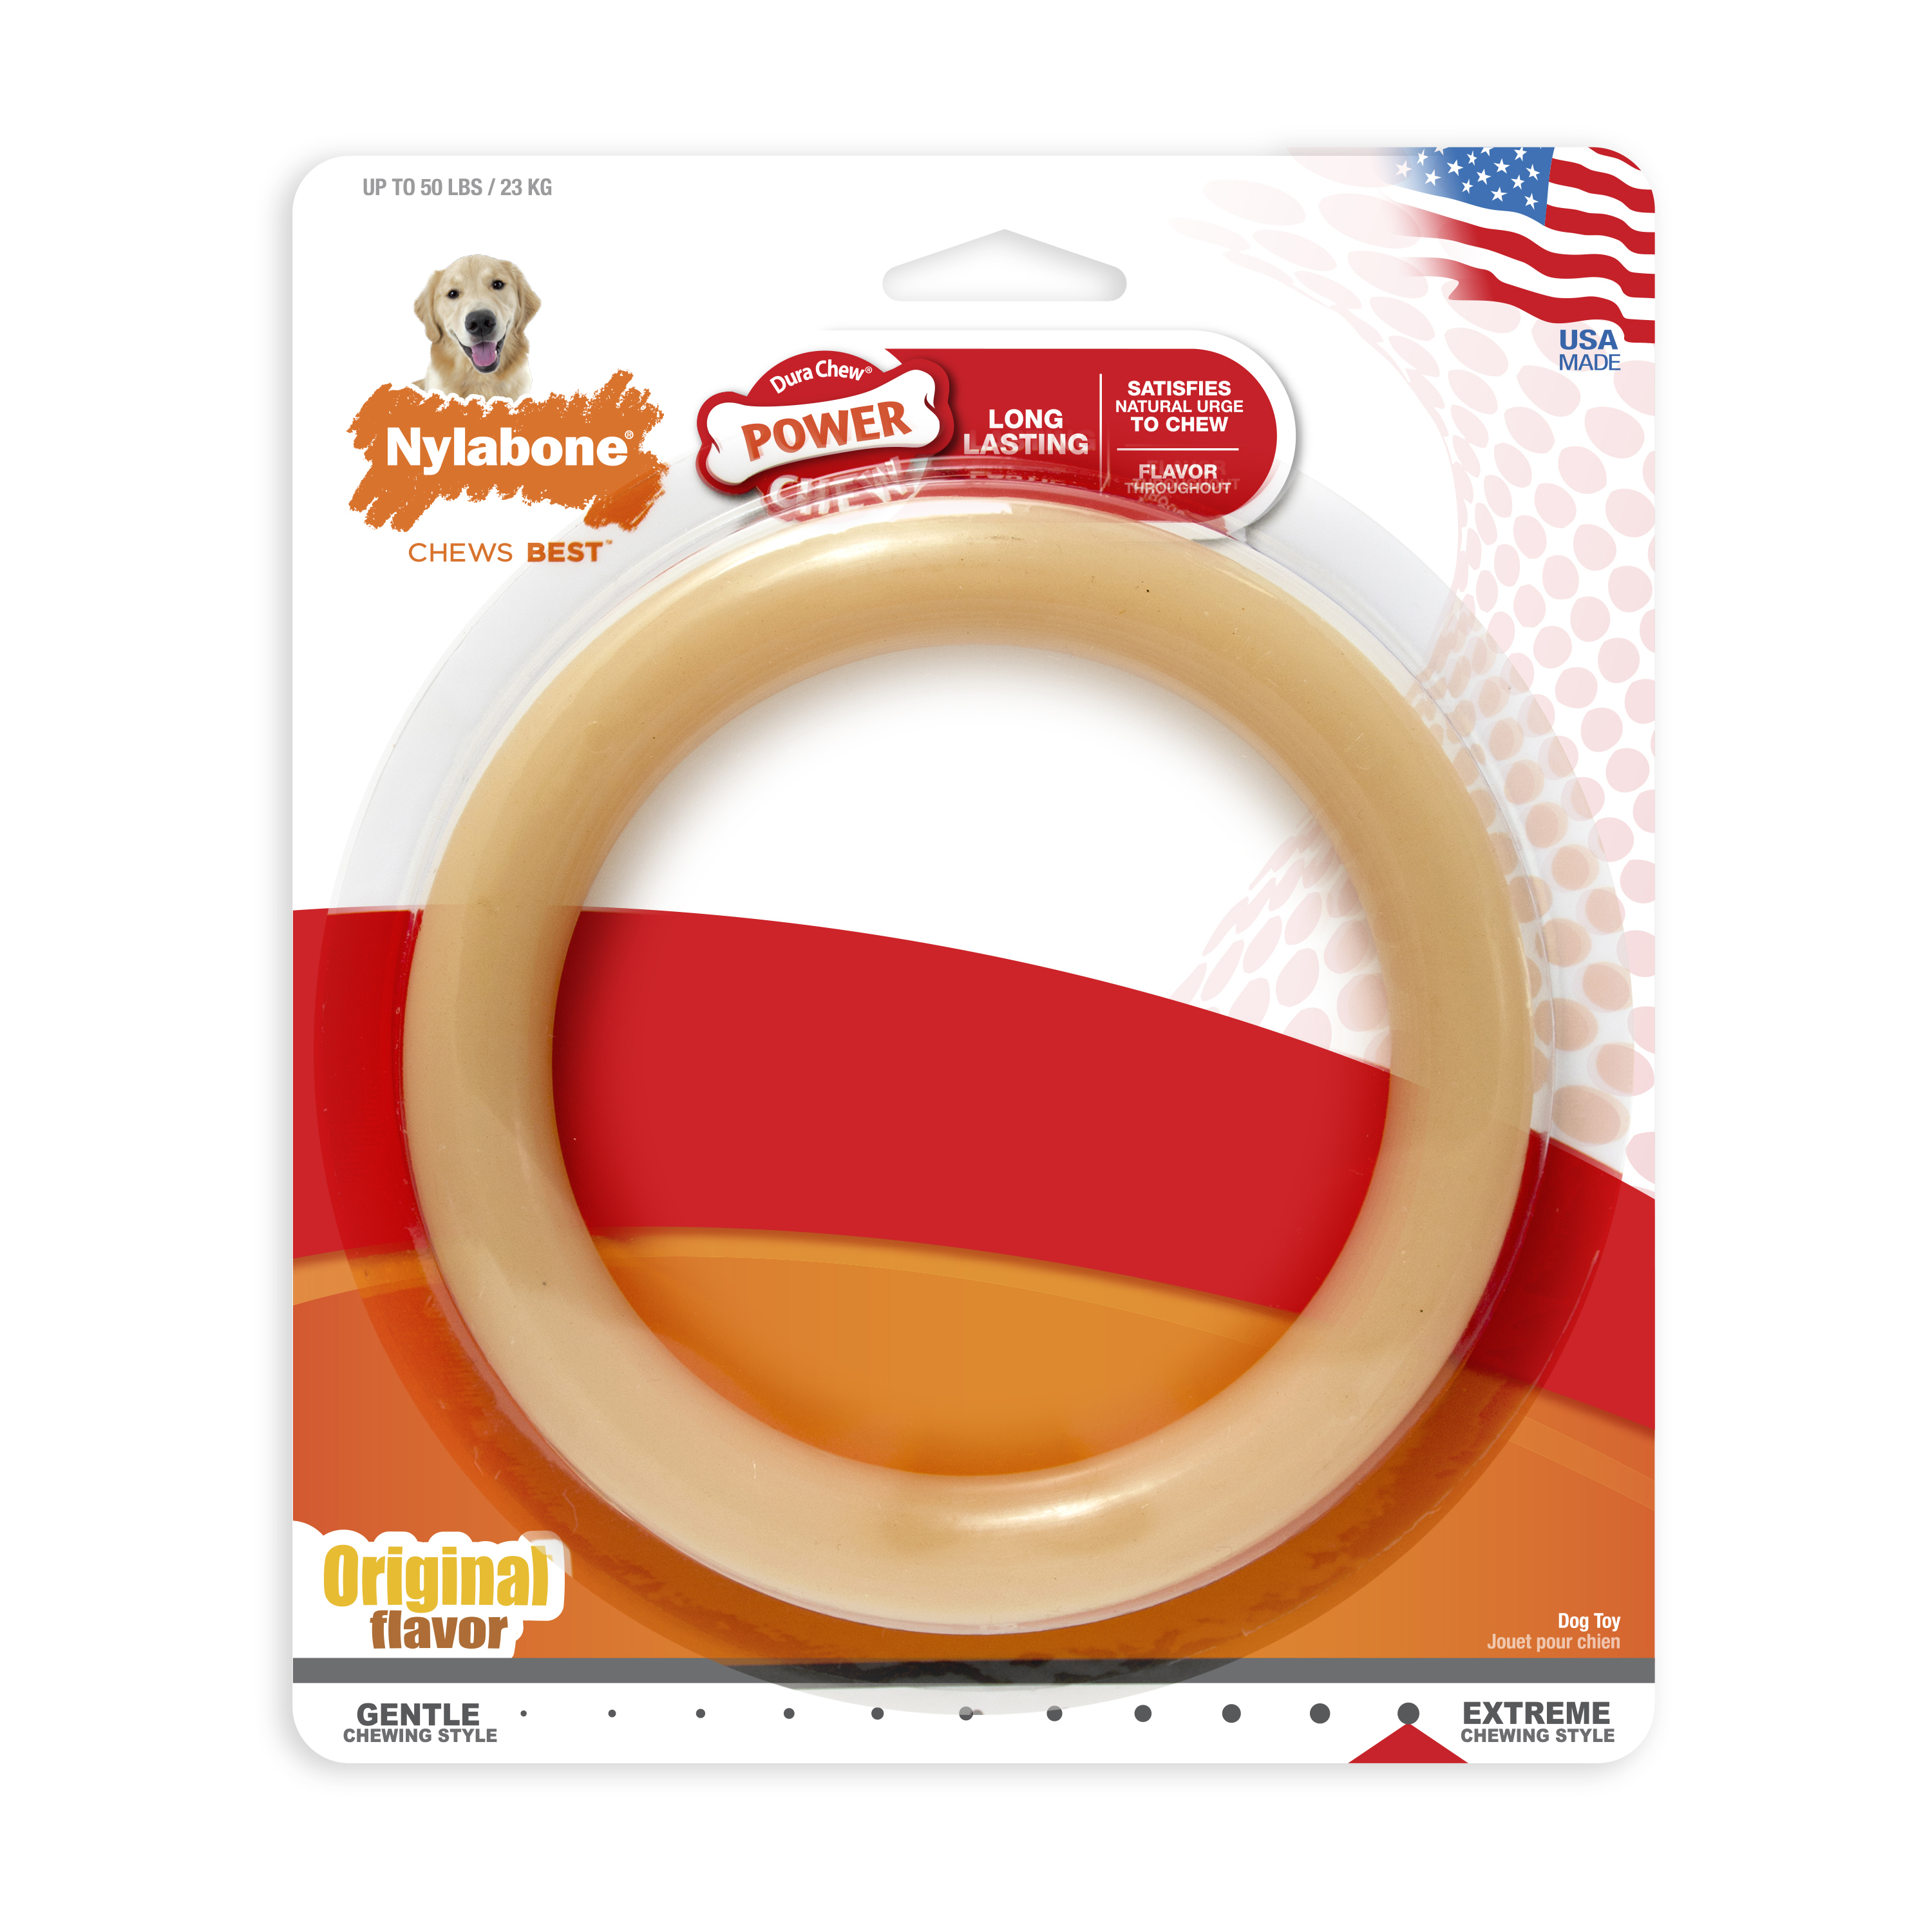 Nylabone Ring Power Chew Dura Chew Toy for Large Dogs, Original